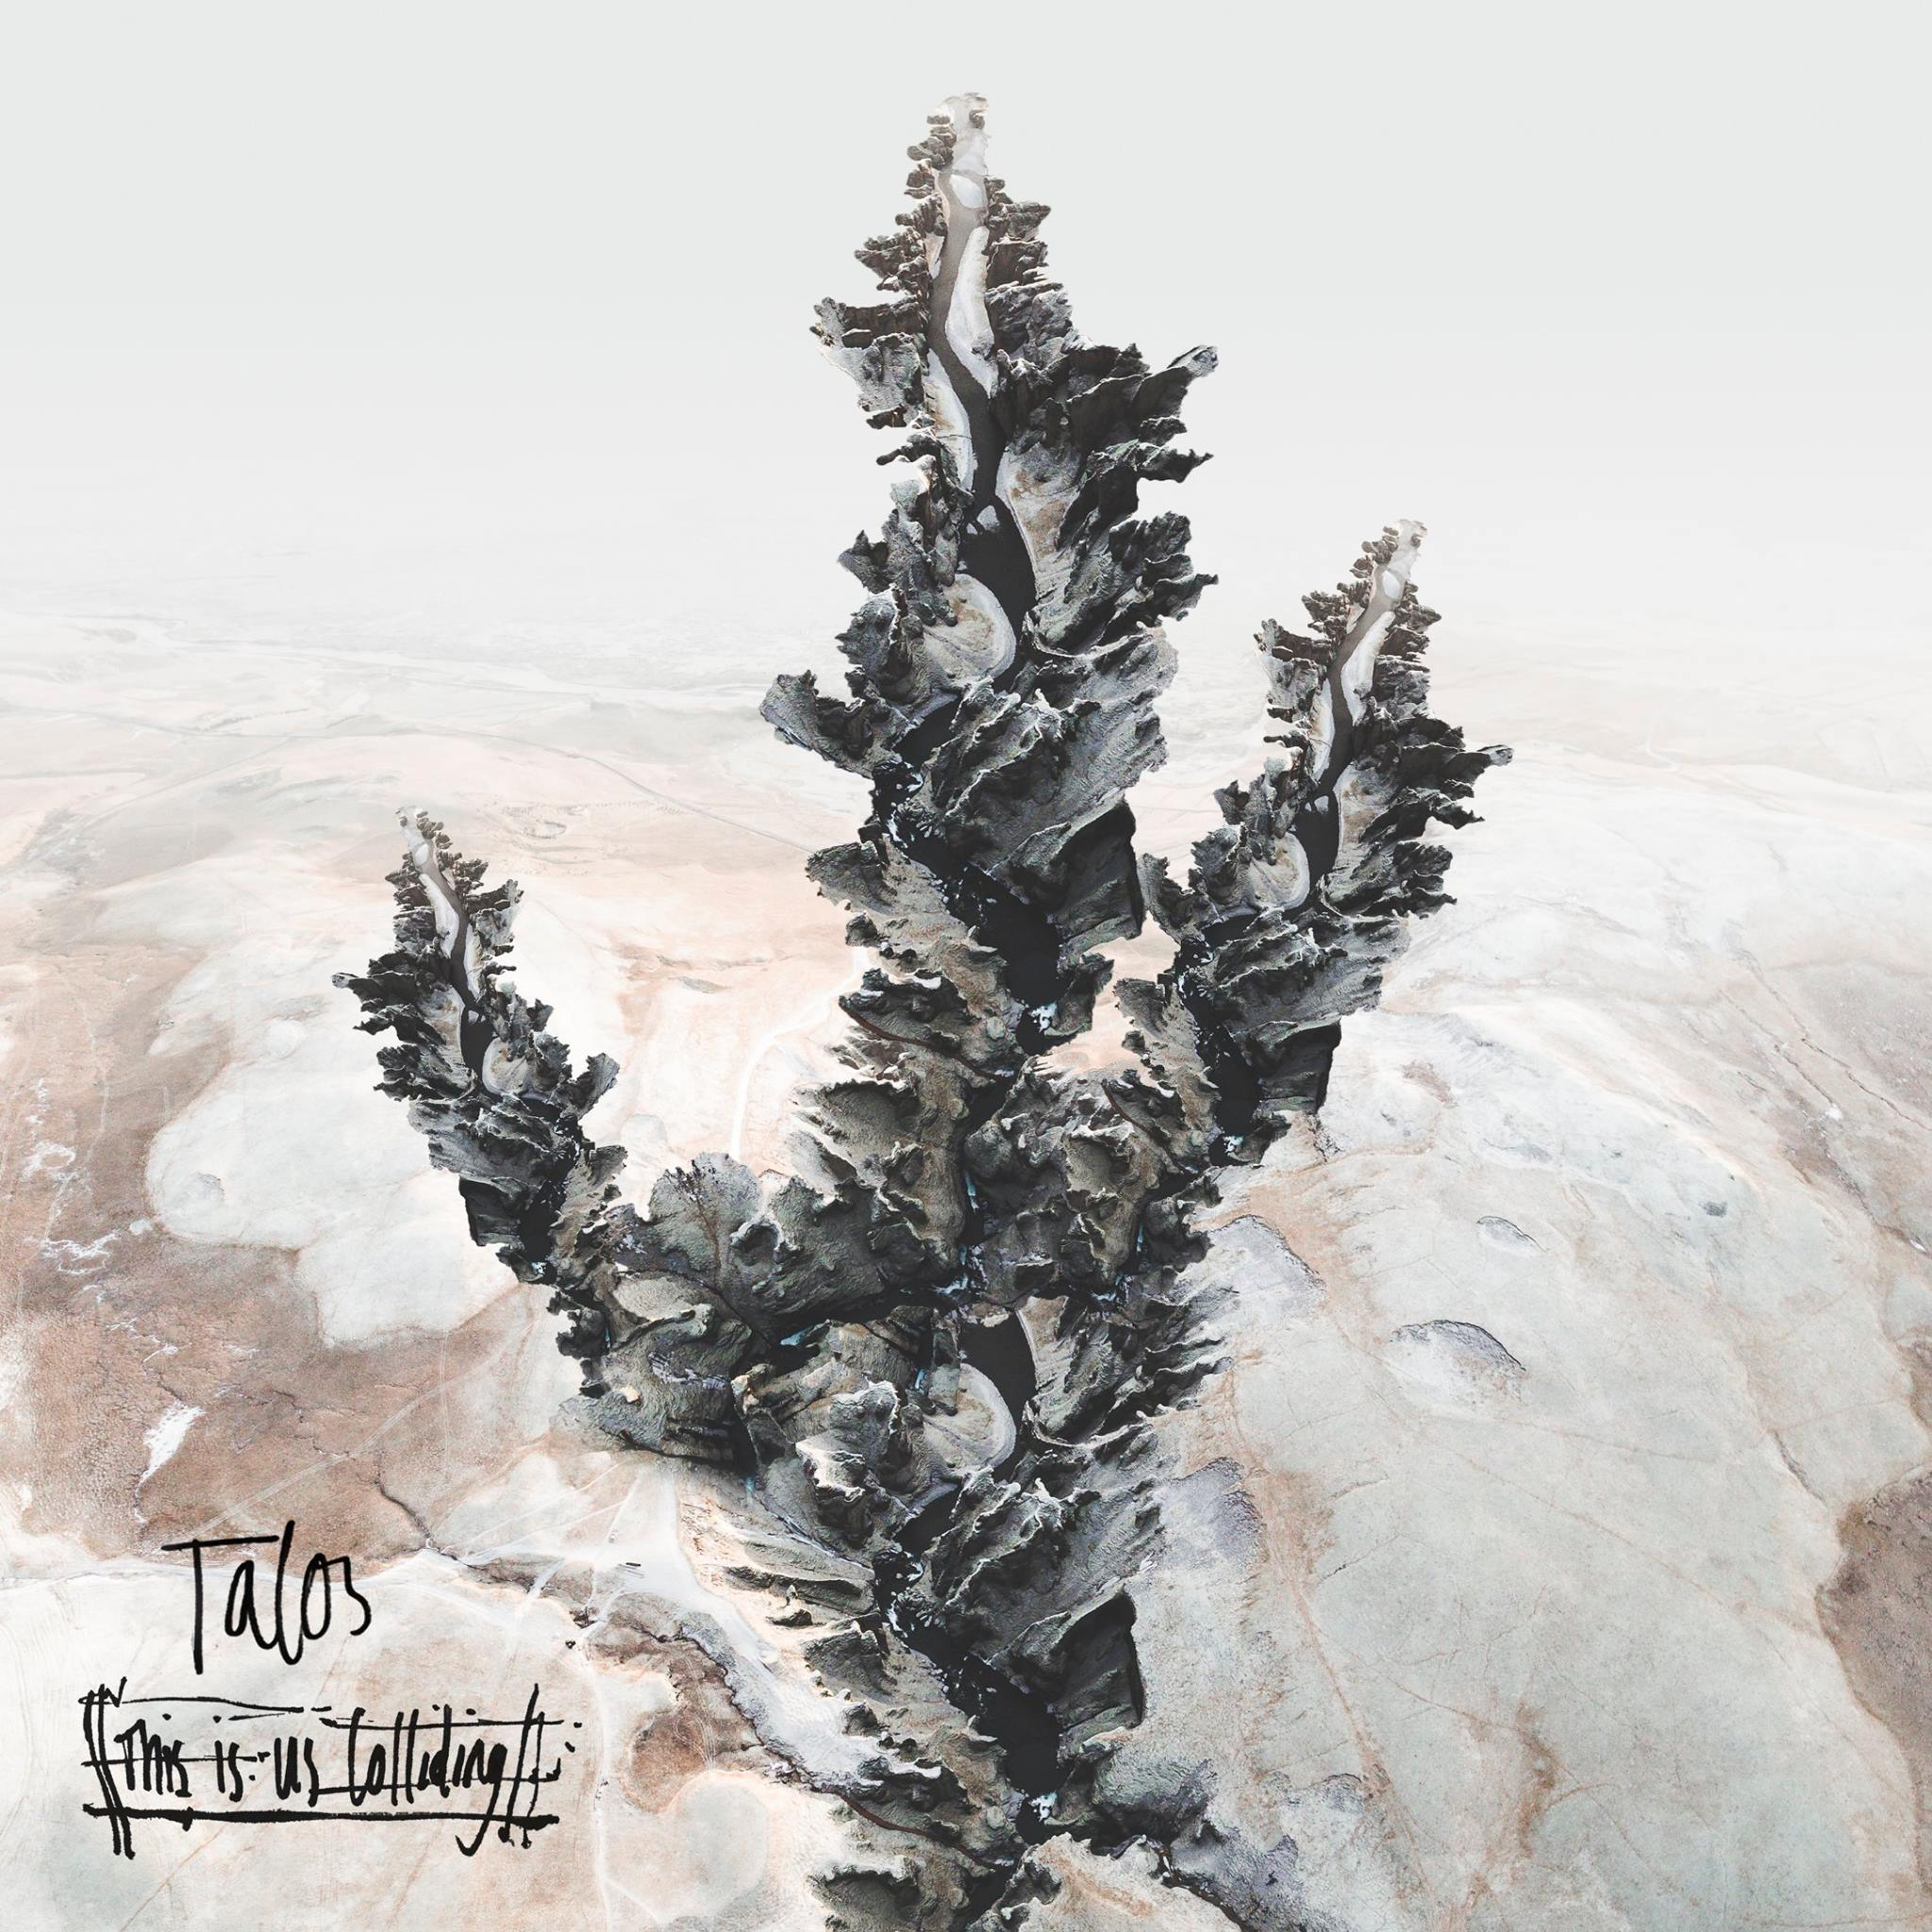 Watch | Talos releases sprawling video for 'This Is Us Colliding'